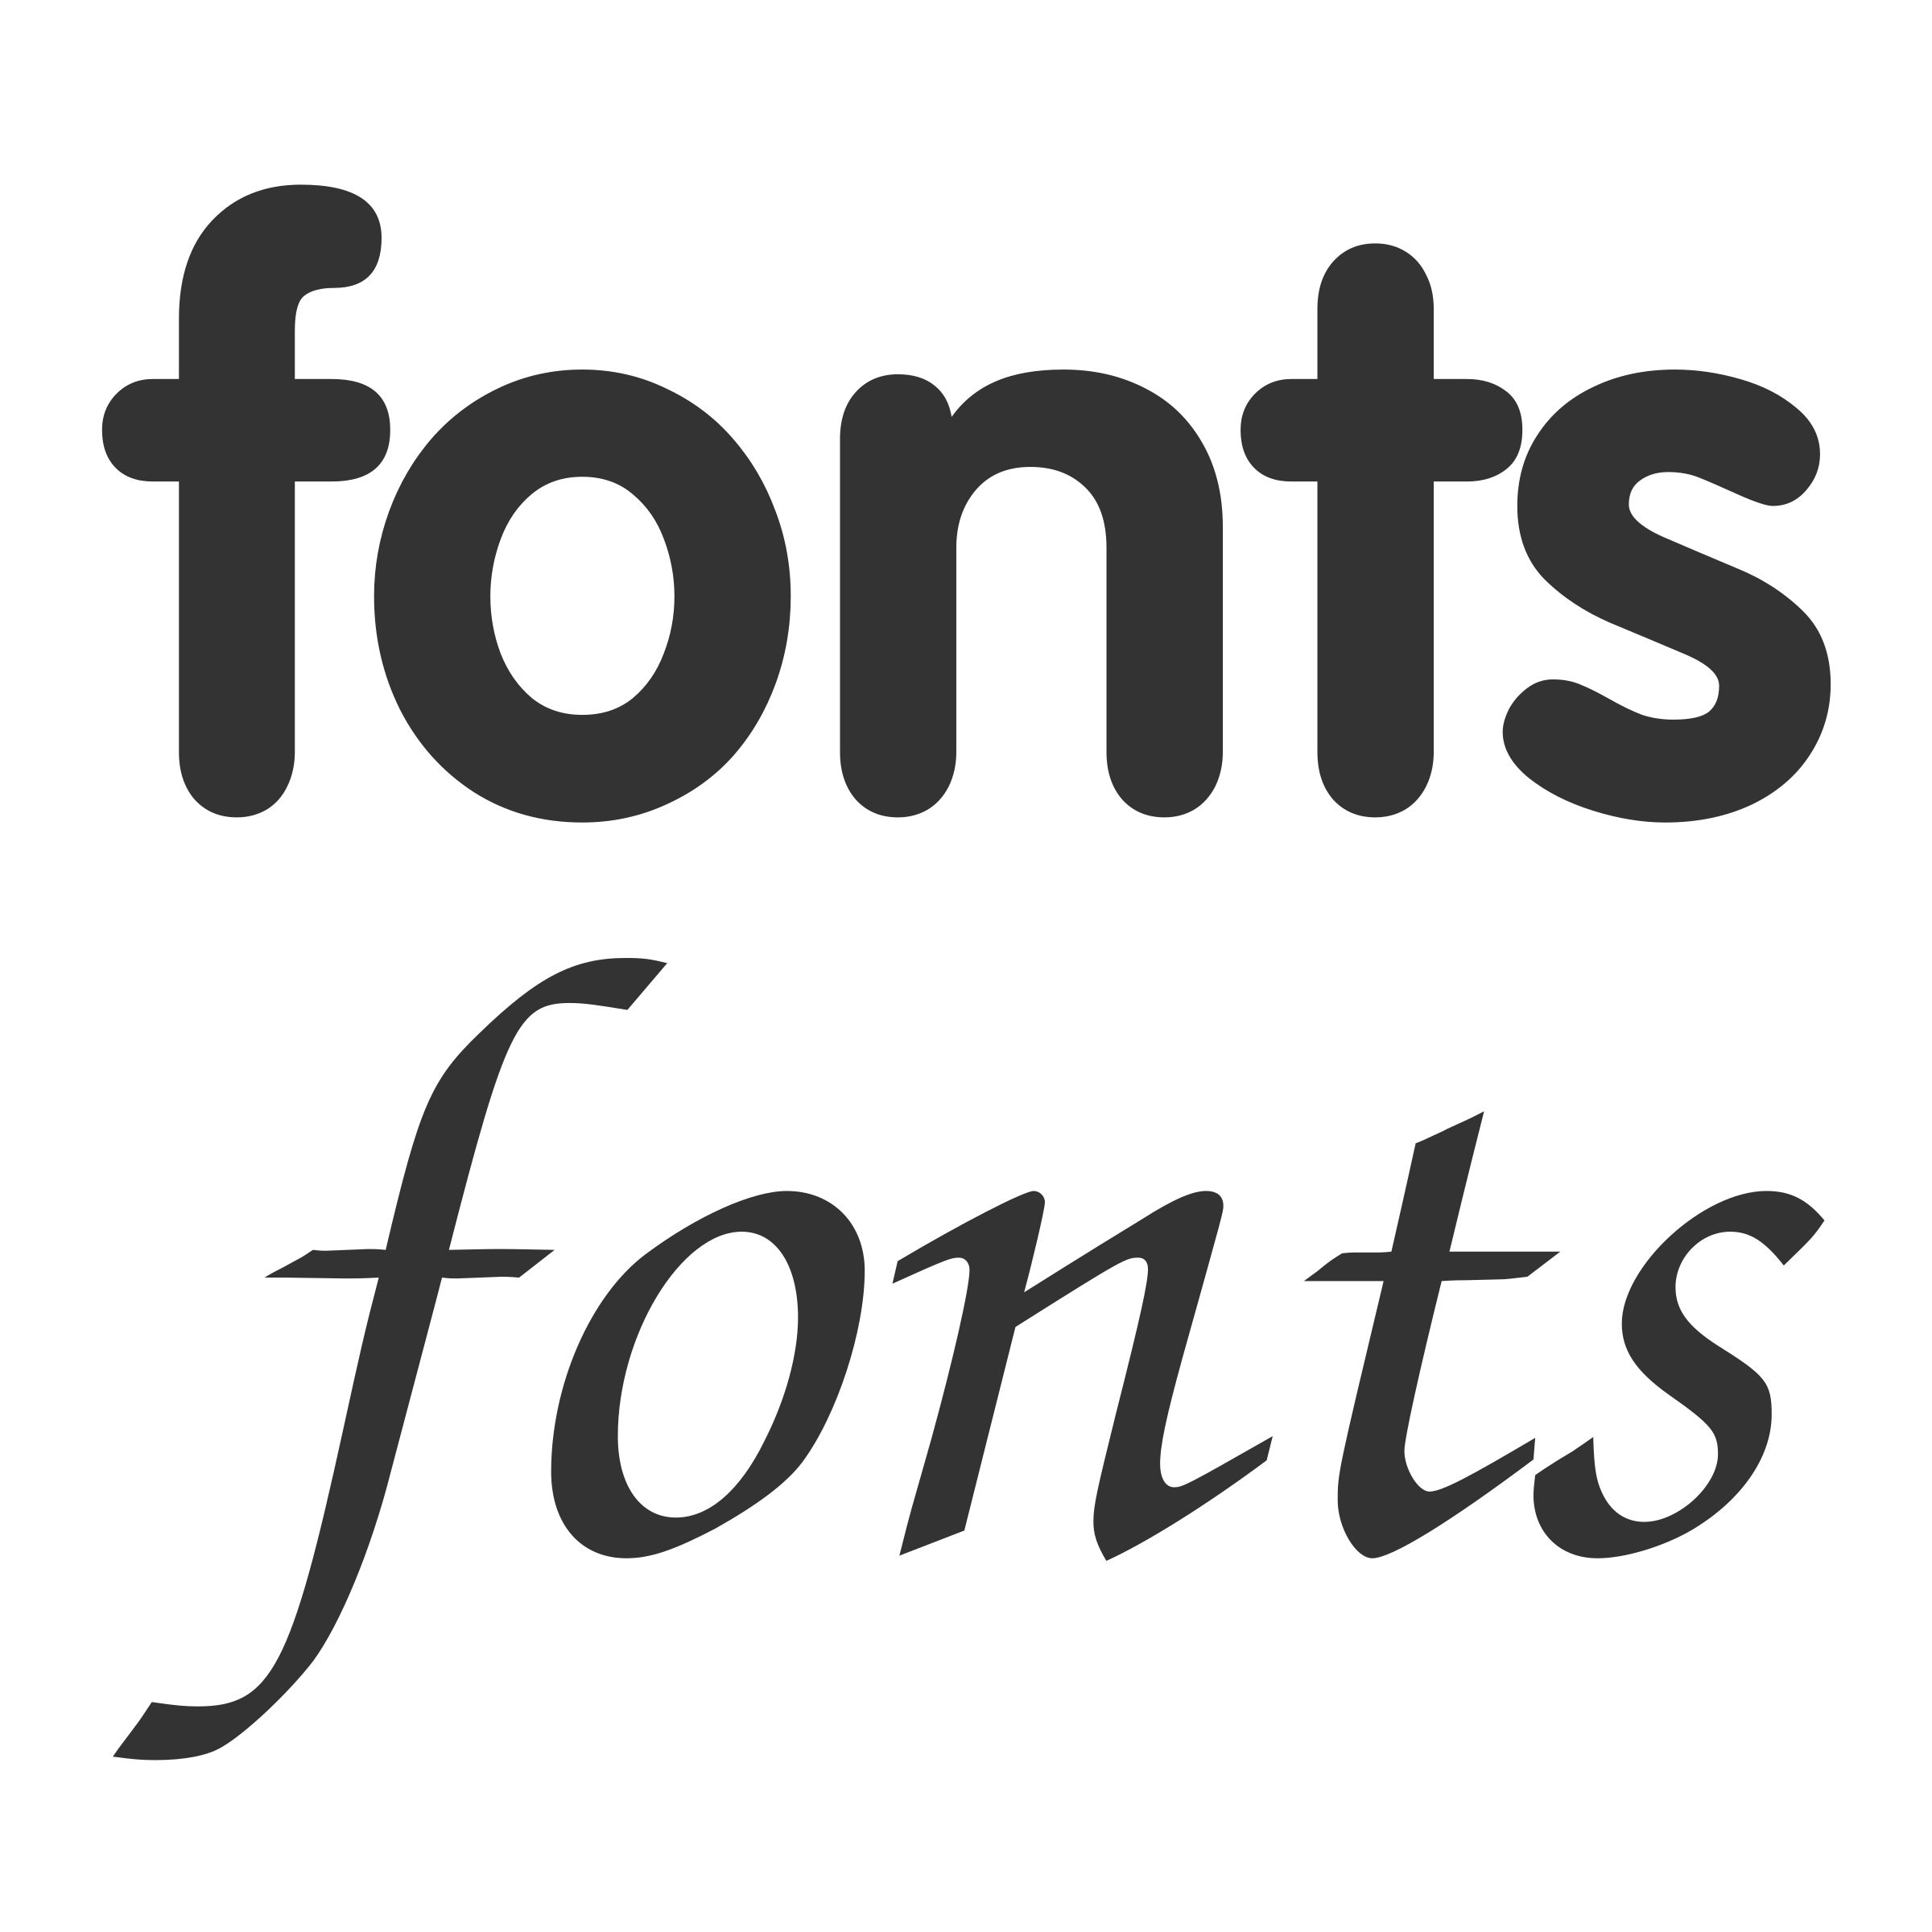 ftfonts by dannya